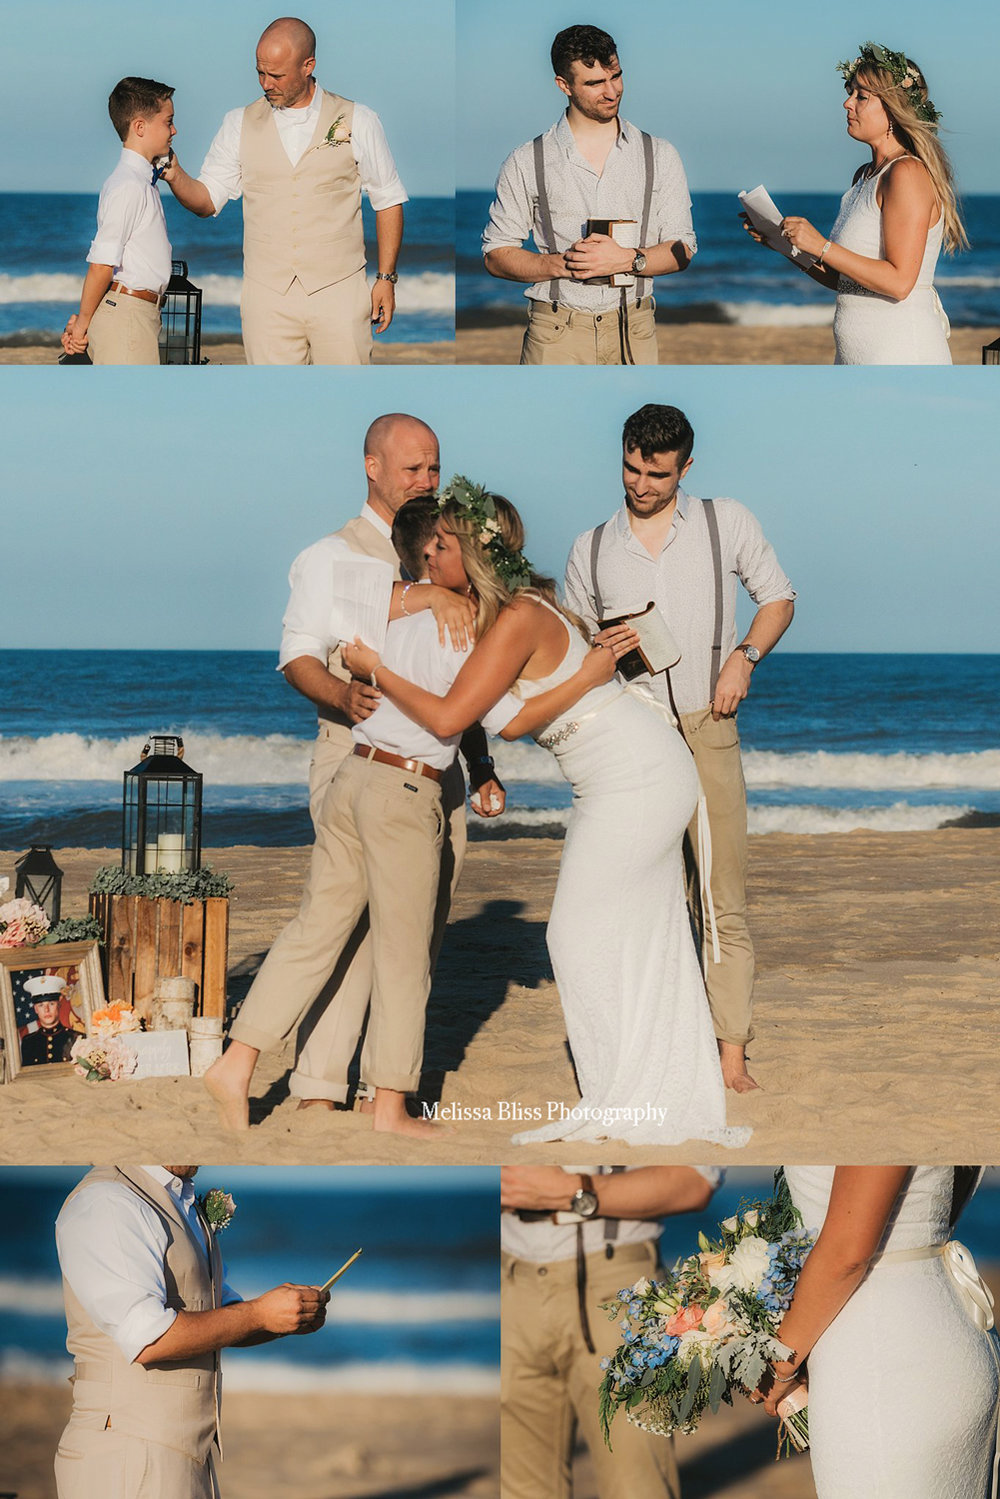 beach-elopement-ceremony-virginia-beach-wedding-by-melissa-bliss-photography-norfolk-chesapeake-sandbridge-wedding-photographer.jpg